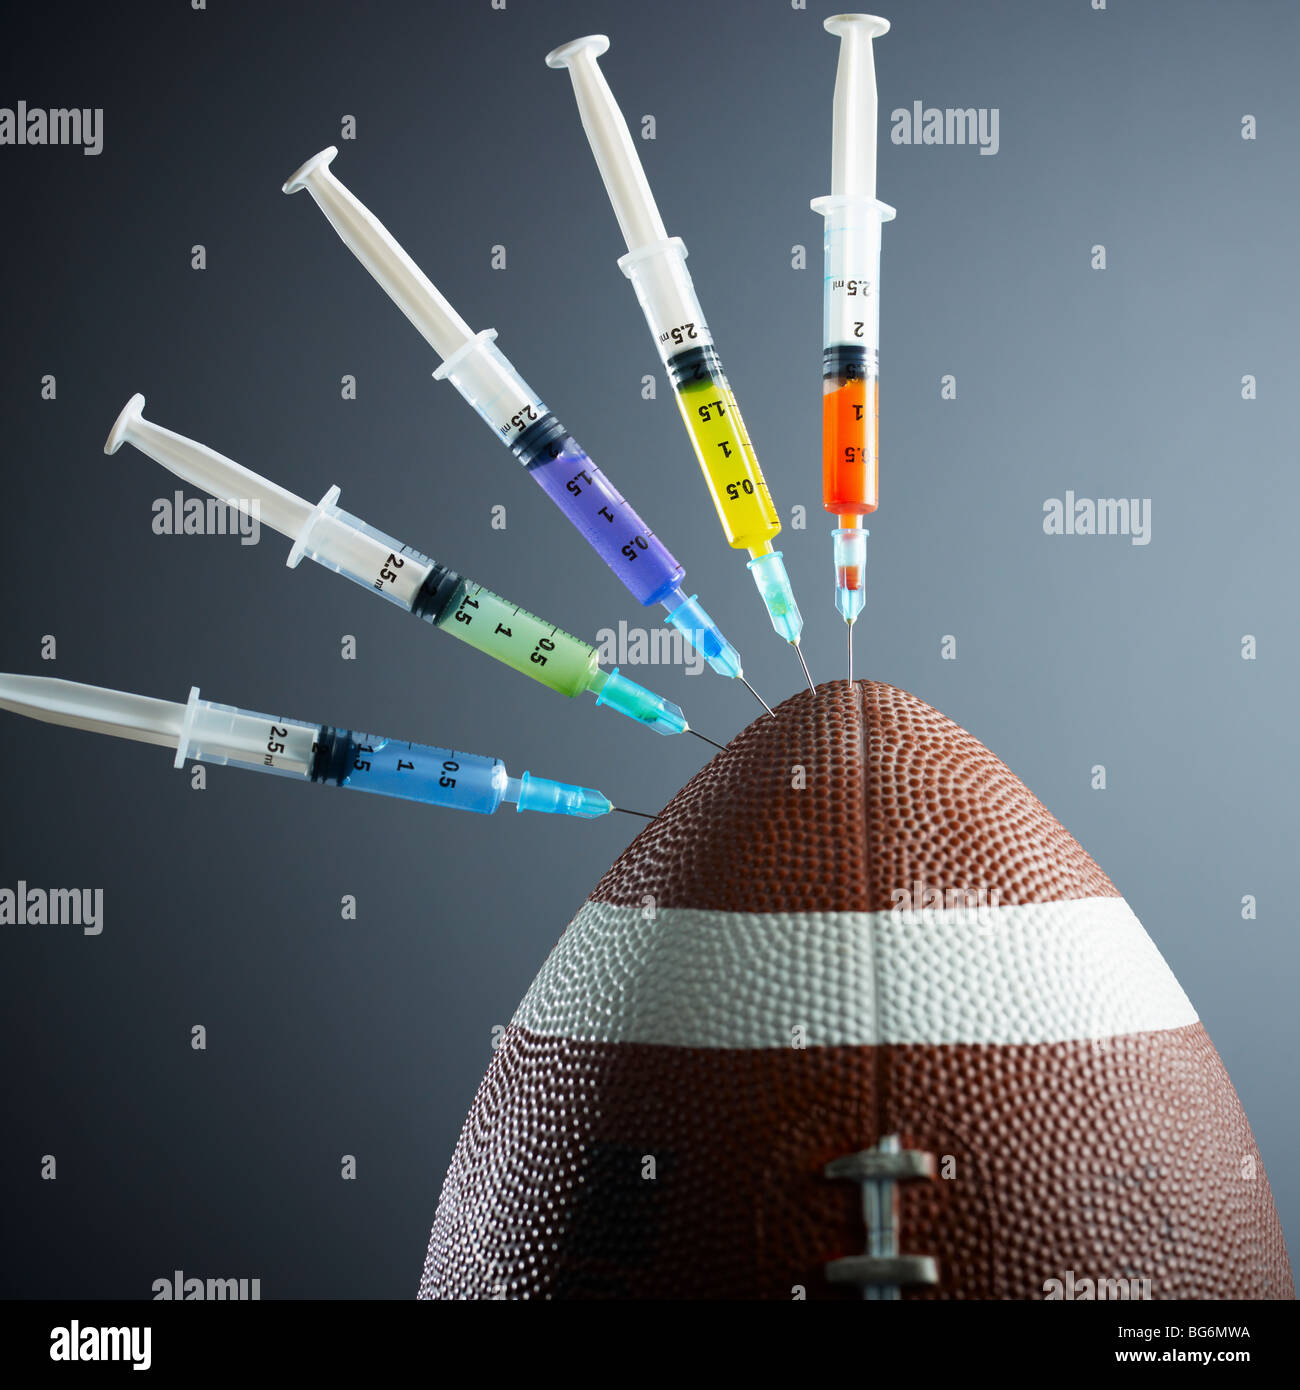 five syringes threaded in american football ball. - Stock Image